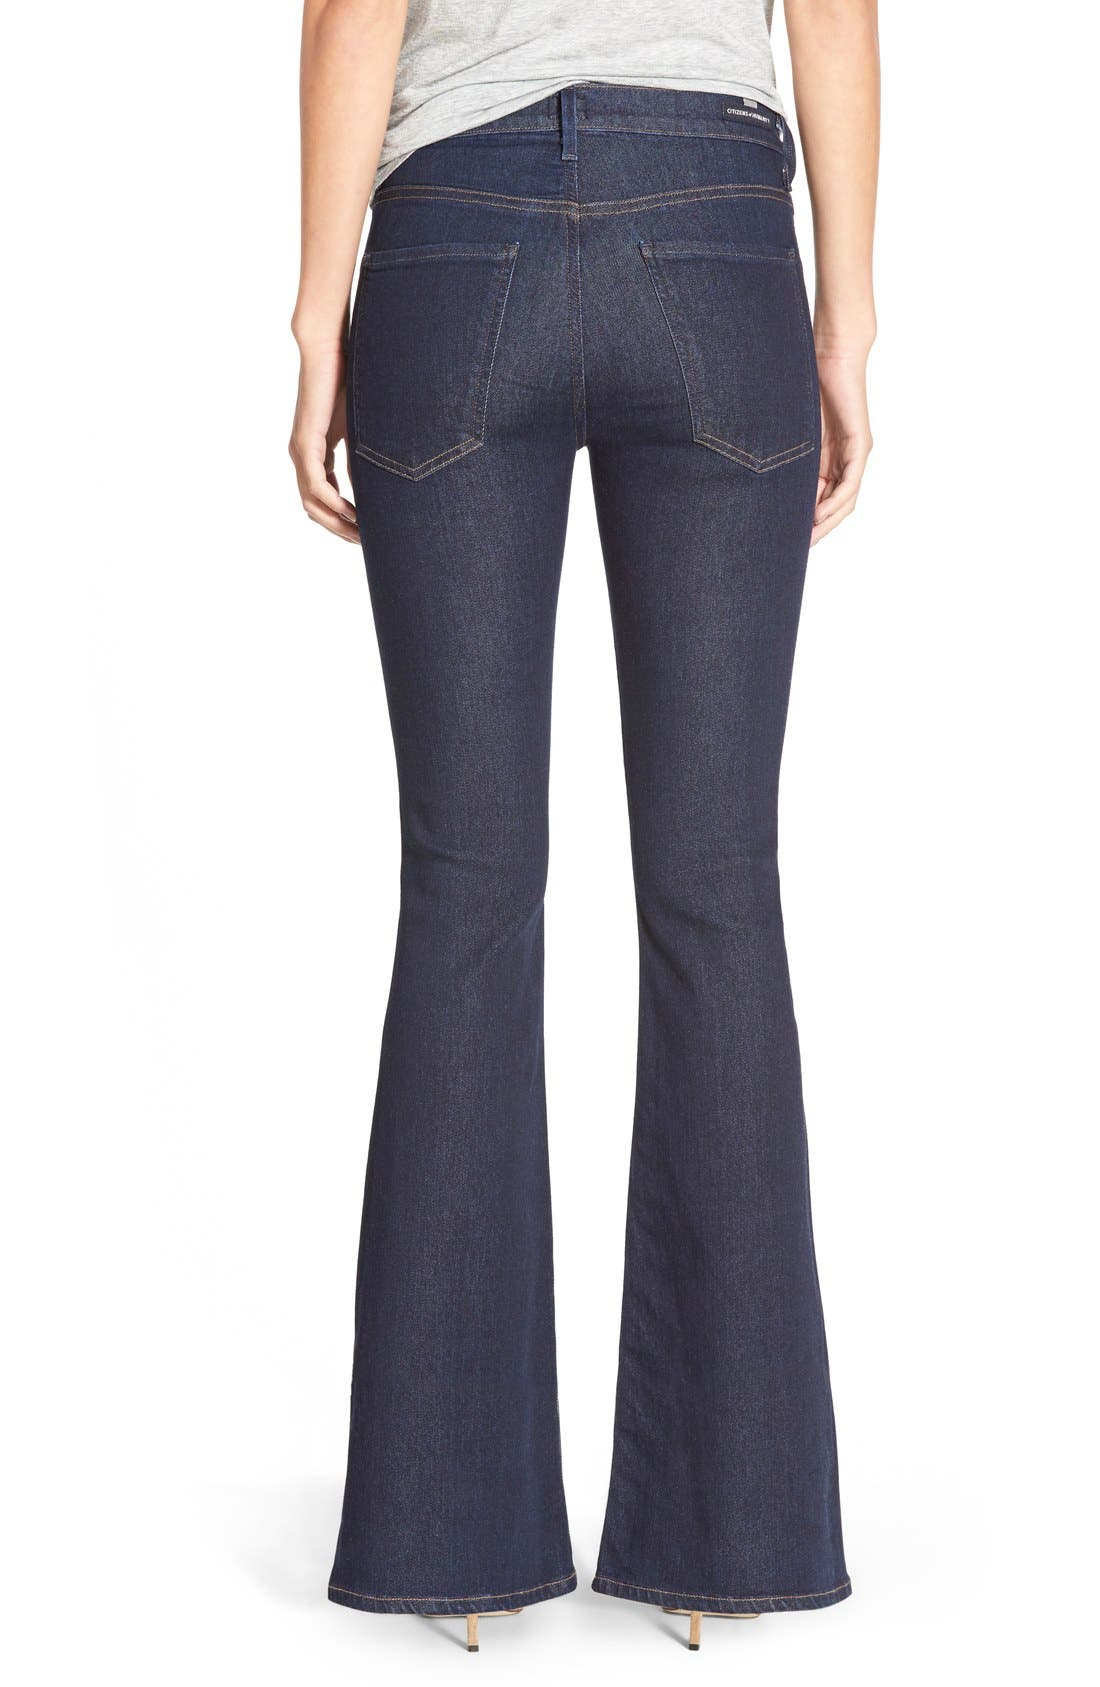 'Fleetwood' High Rise Flare Jeans,                             Alternate thumbnail 2, color,                             Ozone Rinse